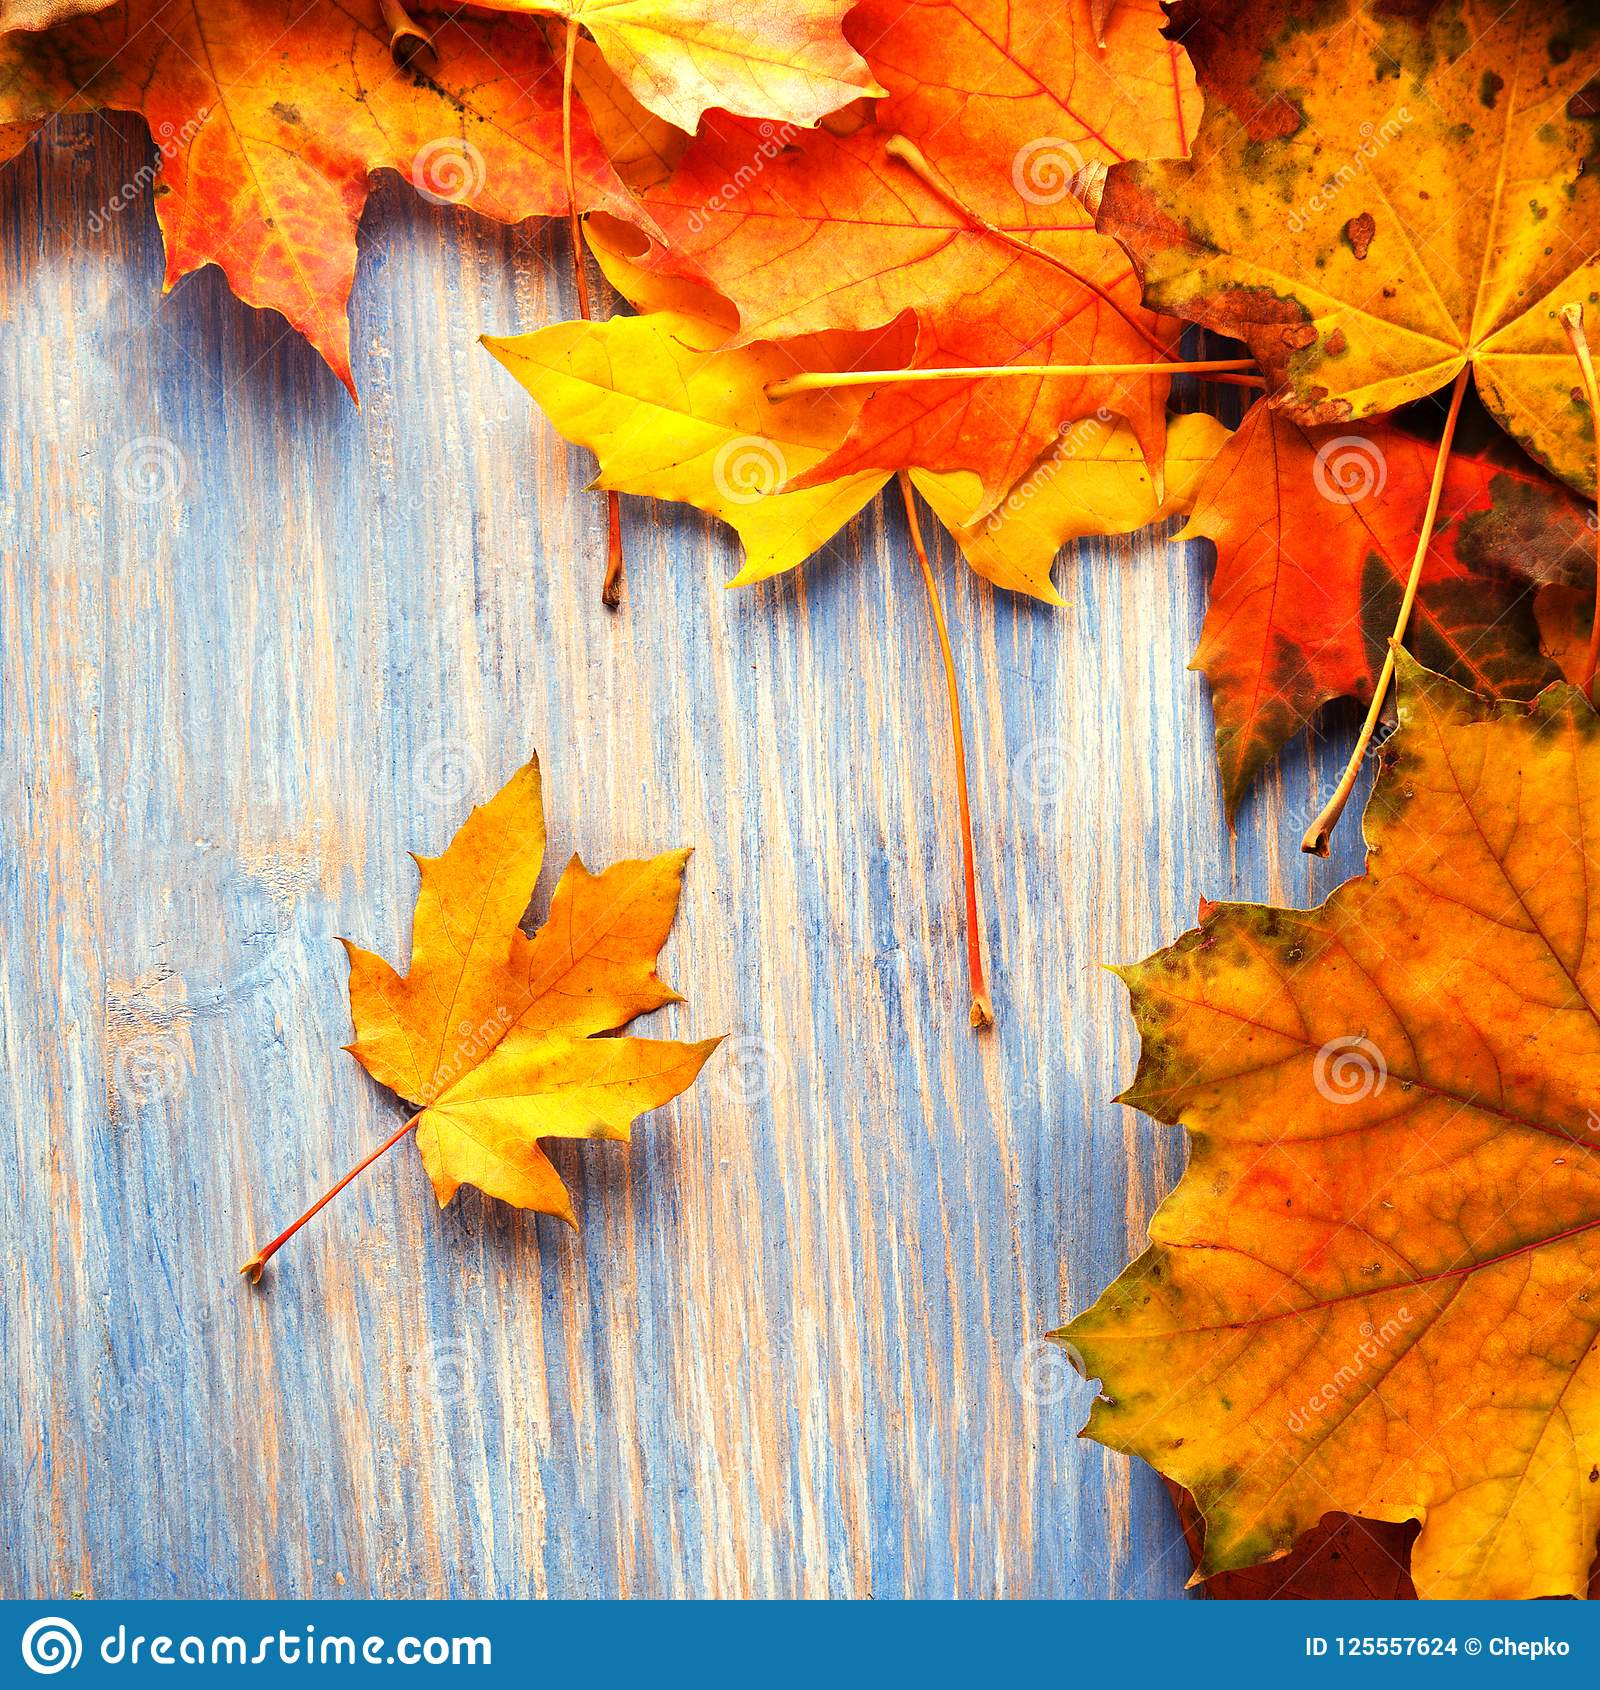 Download Autumn Leaf On Blue Wood Background Top View Stock Photo - Image of decoration, backgrounds: 125557624